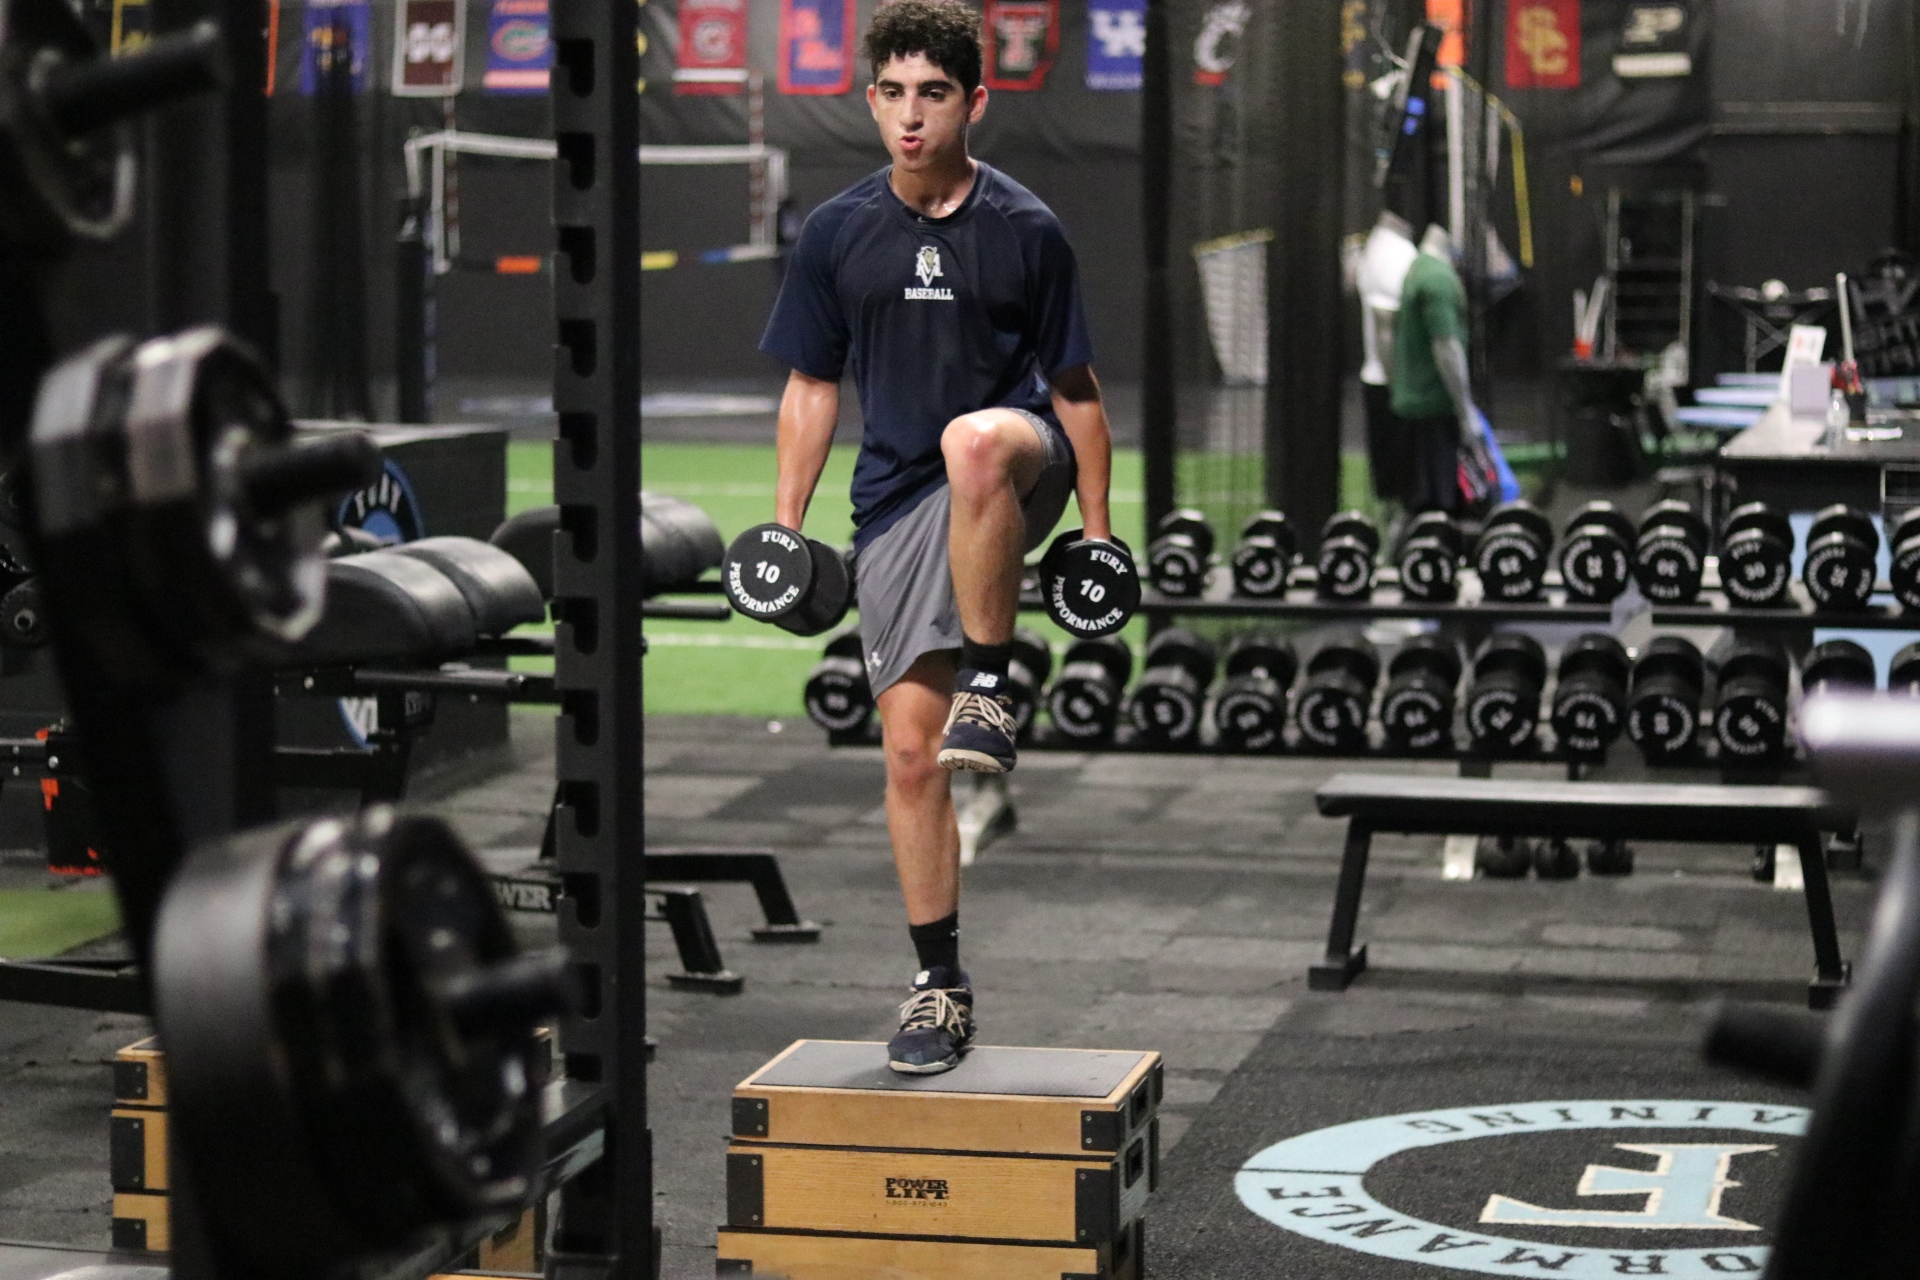 Baseball Softball Specific Training, Fury Performance Academy